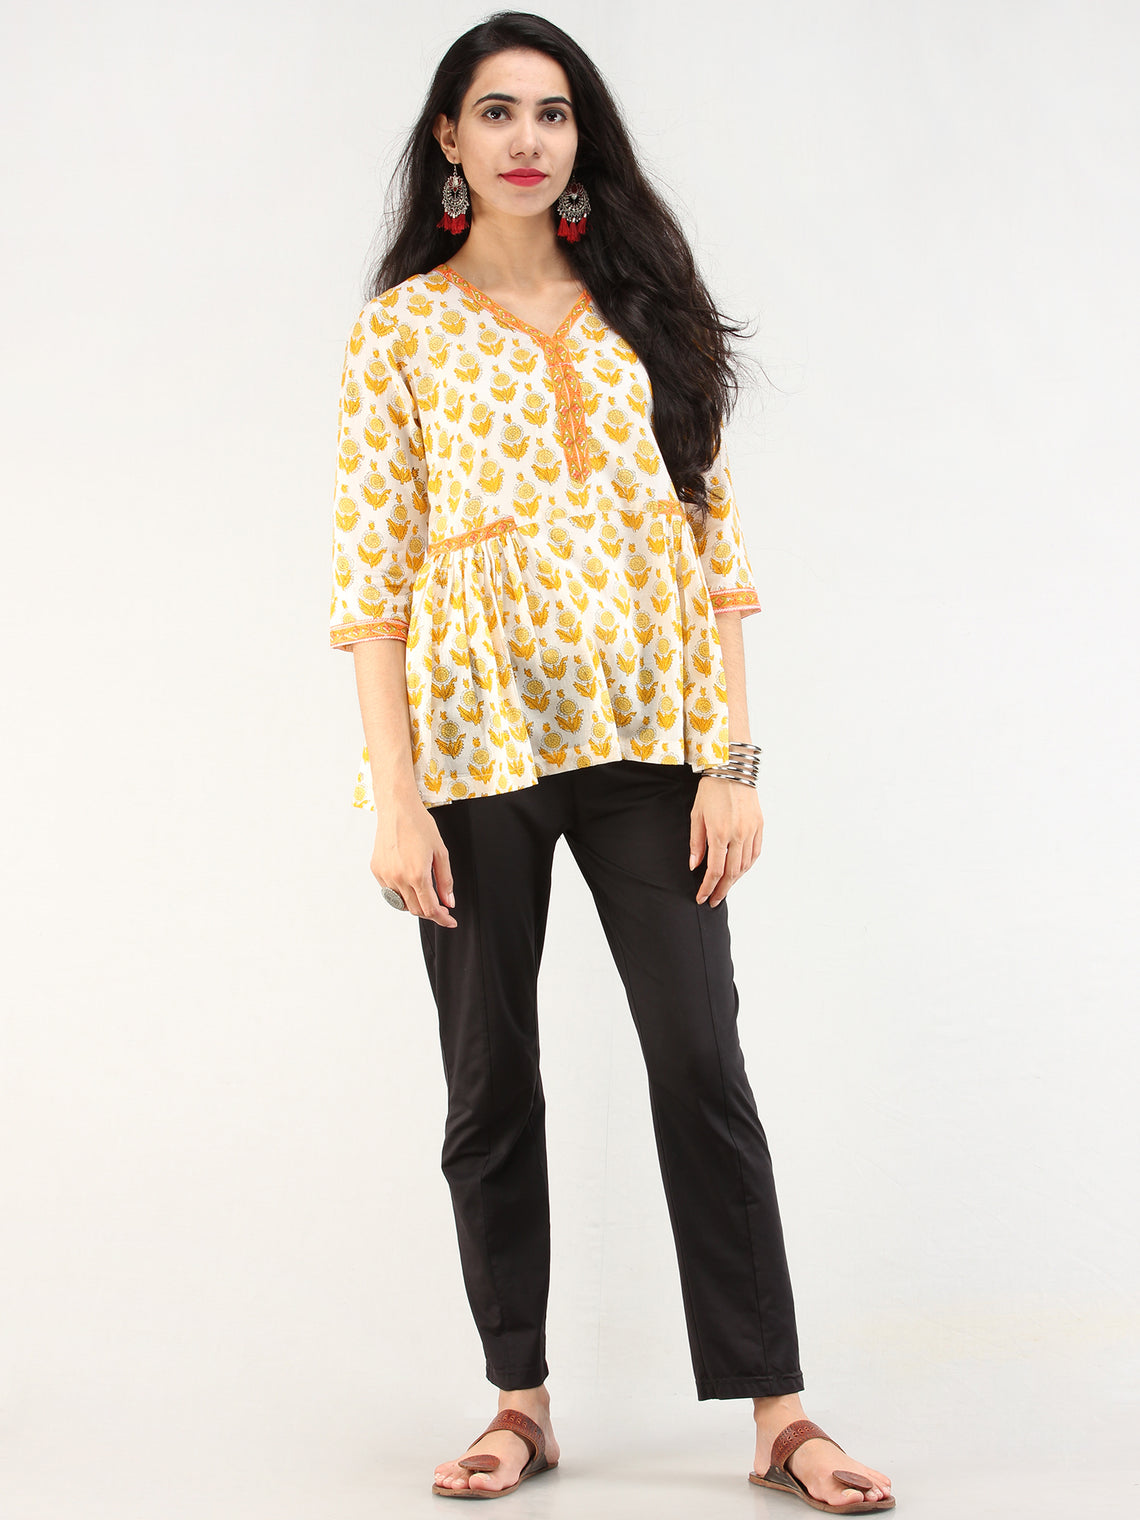 Rangrez Diwa - Cotton Top - T76F2173